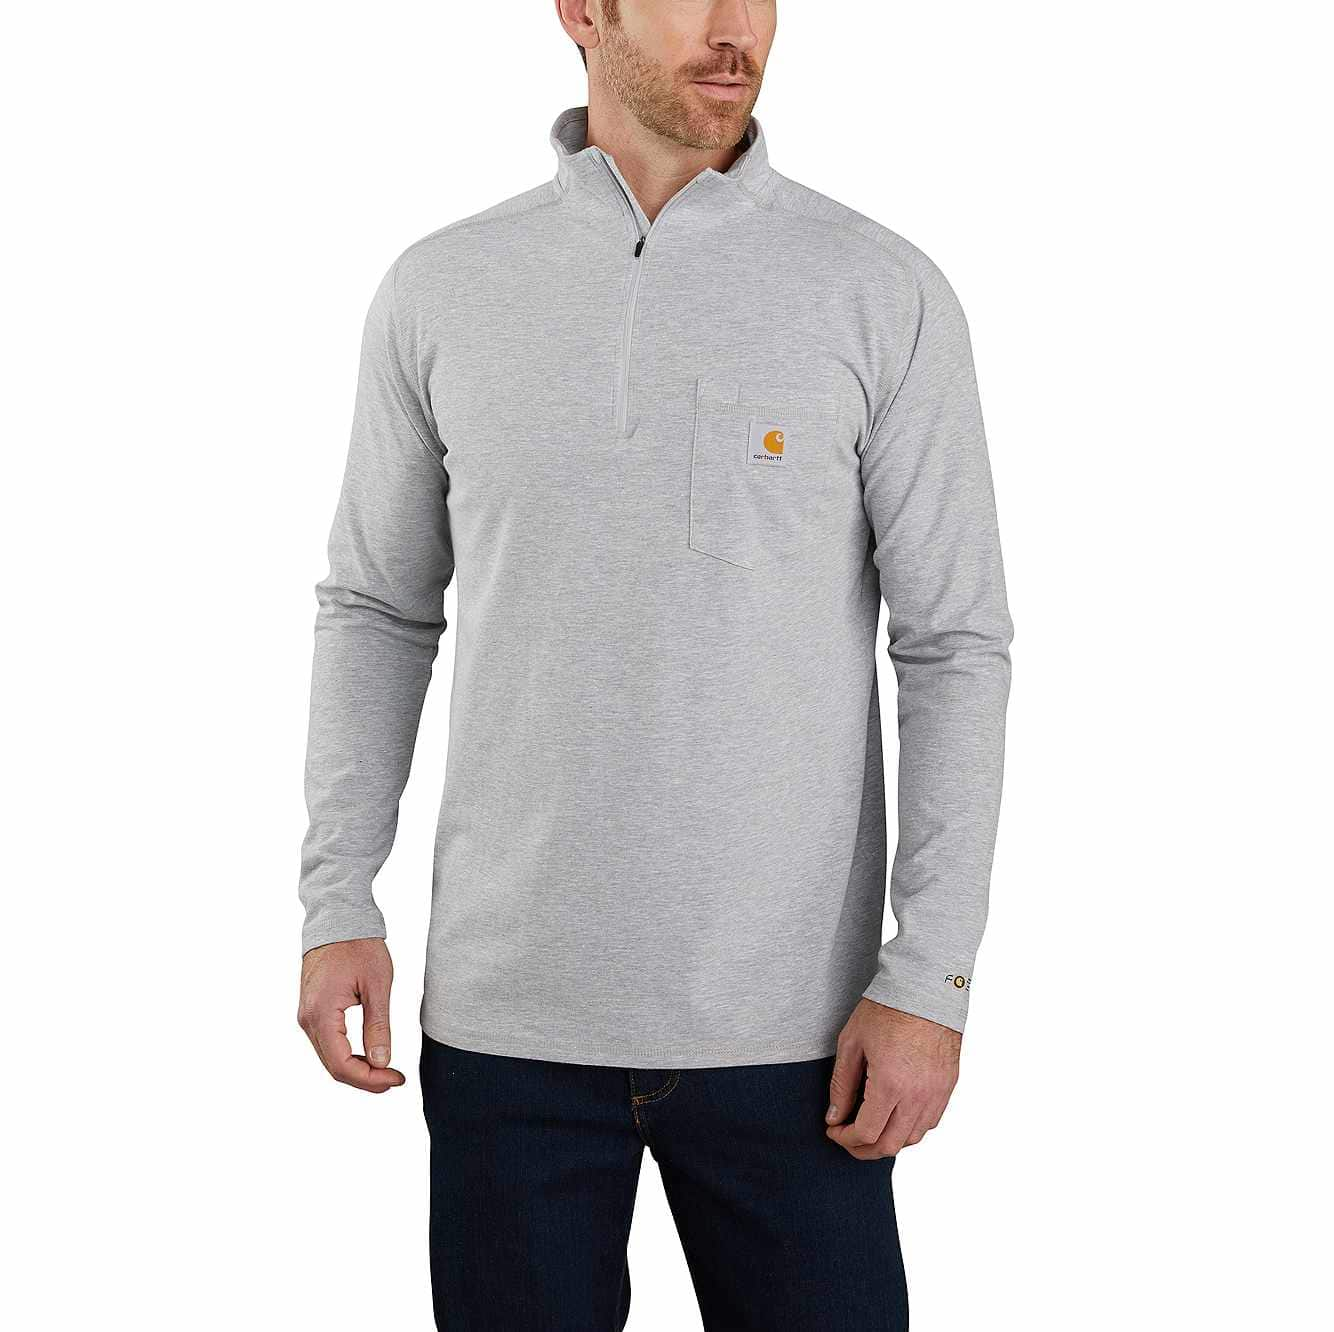 Picture of Carhartt Force® Relaxed Fit Long-Sleeve Quarter-Zip Pocket T-Shirt in Heather Gray